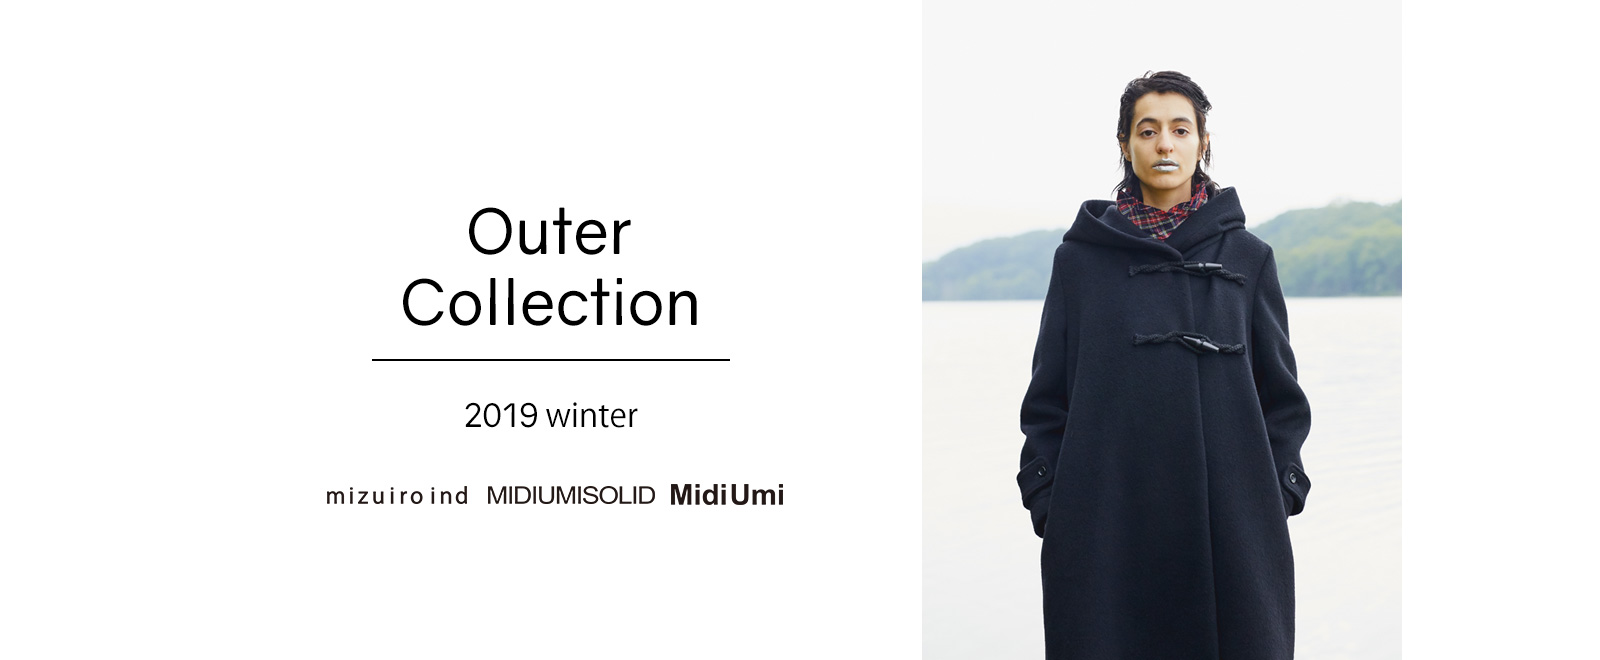 Outer Collection 2019 Winter